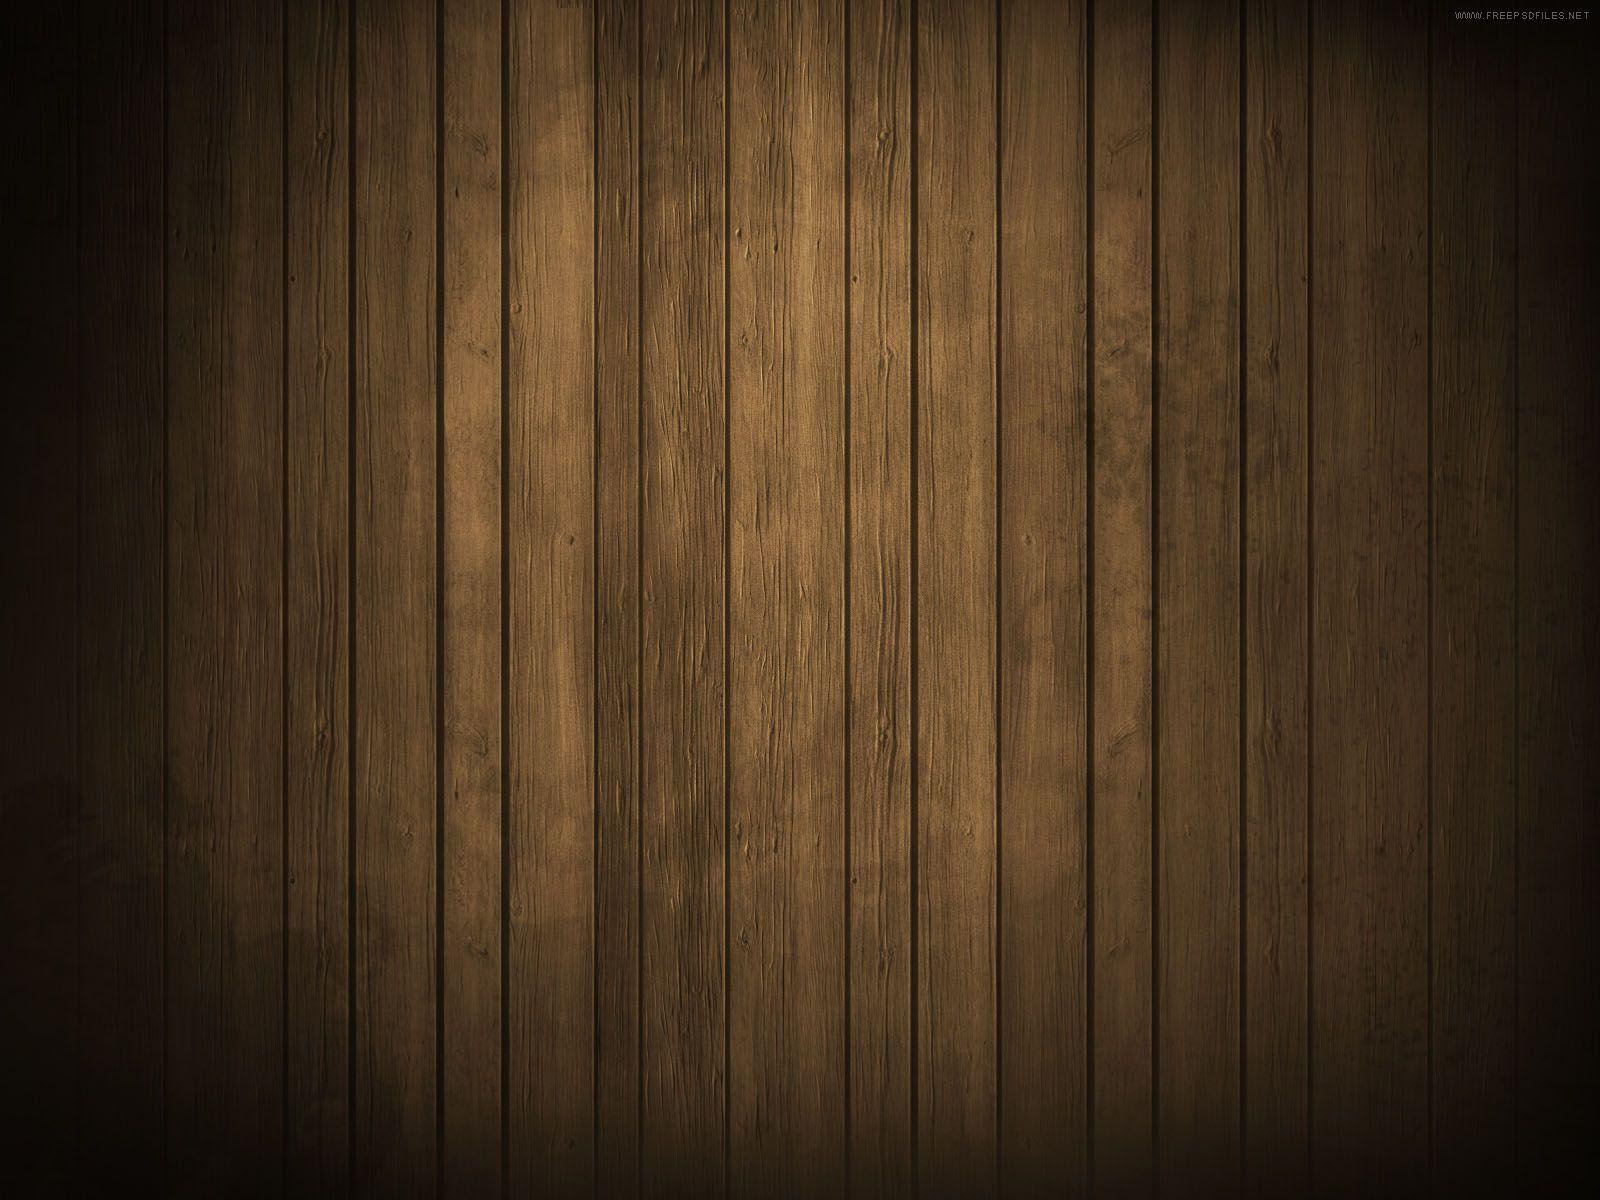 Hd wood backgrounds wallpaper cave for Puerta wallpaper hd